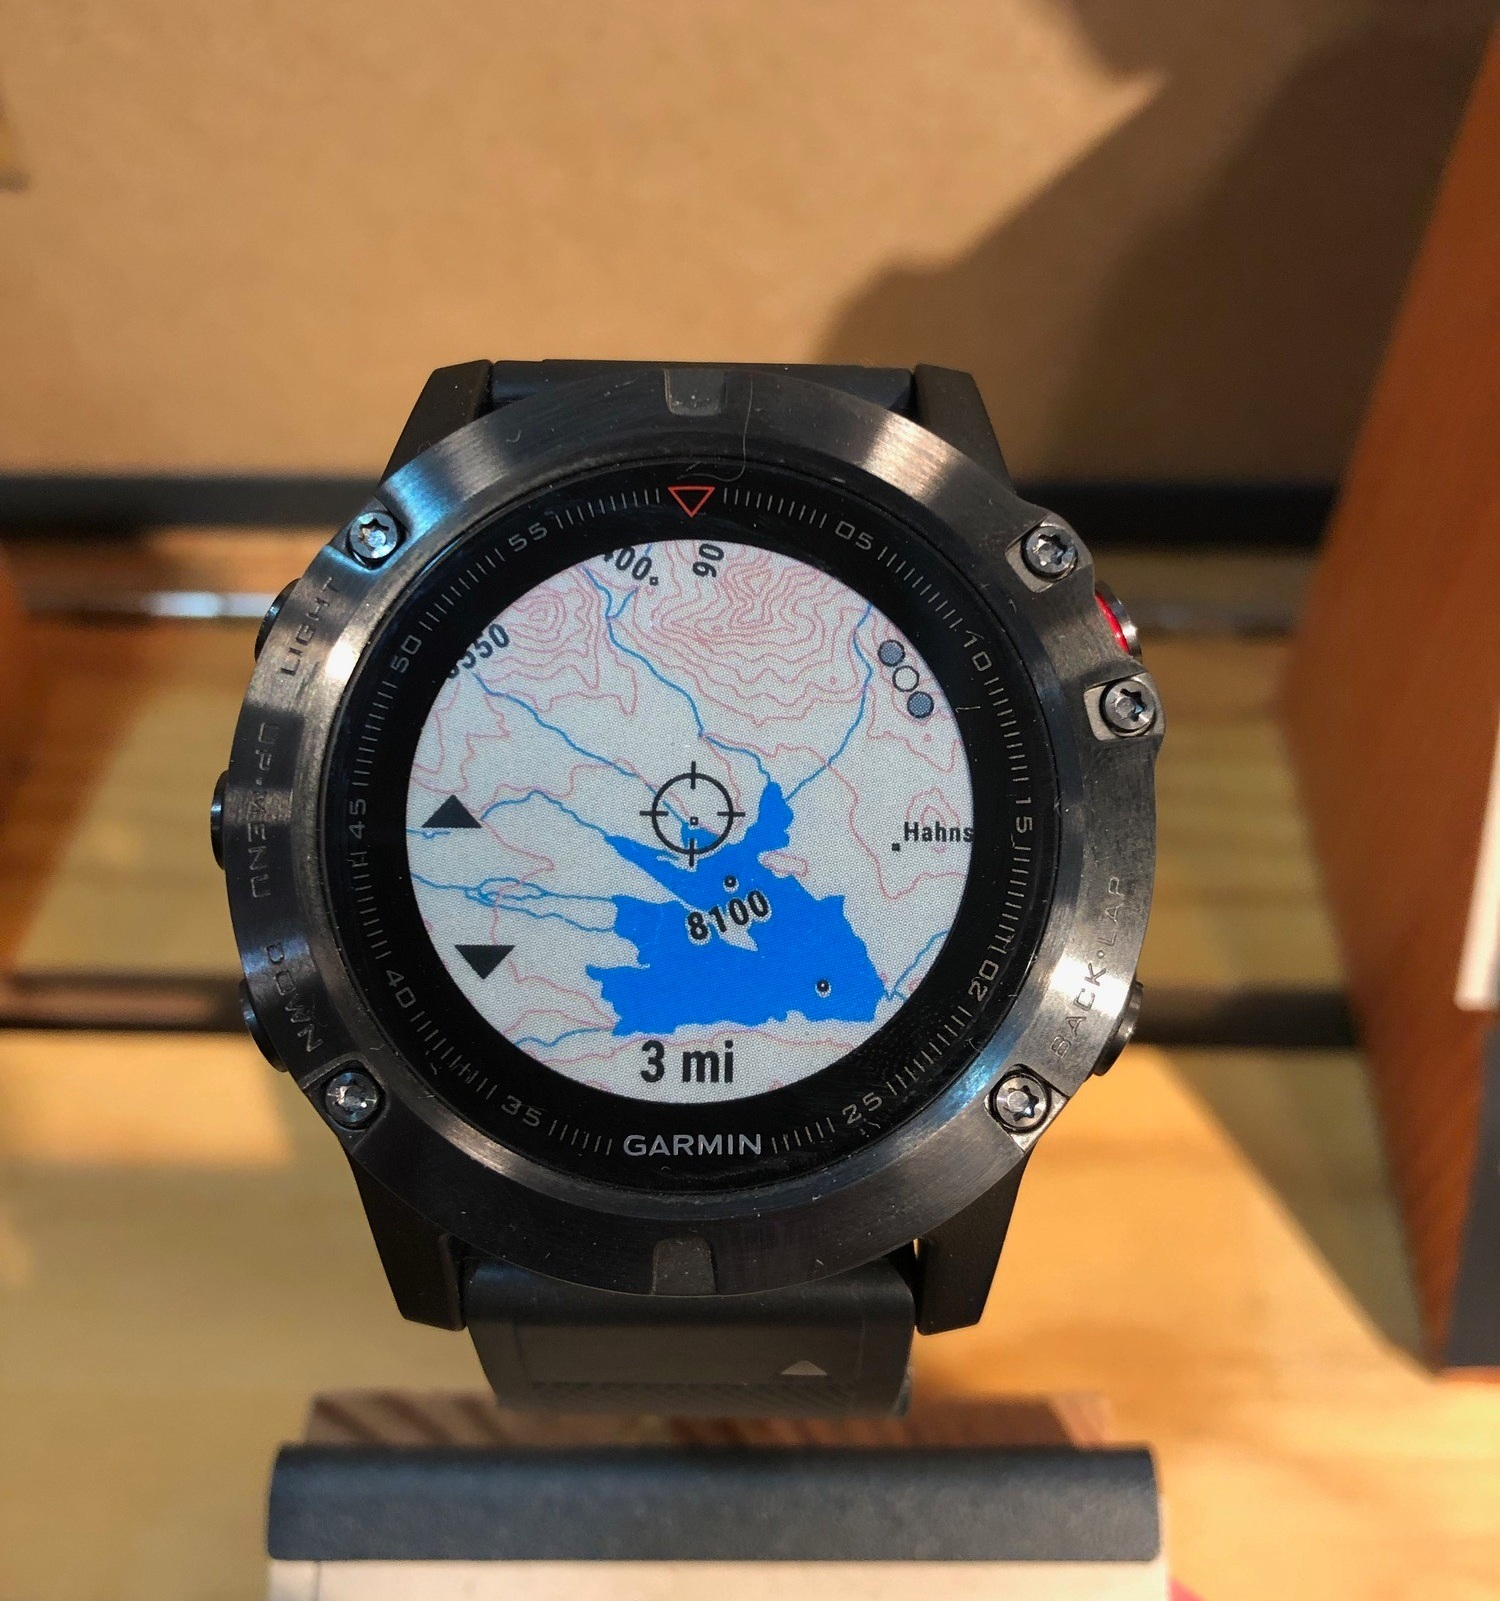 A close up view of the Garmin Fenix 5X Plus with mapping data.